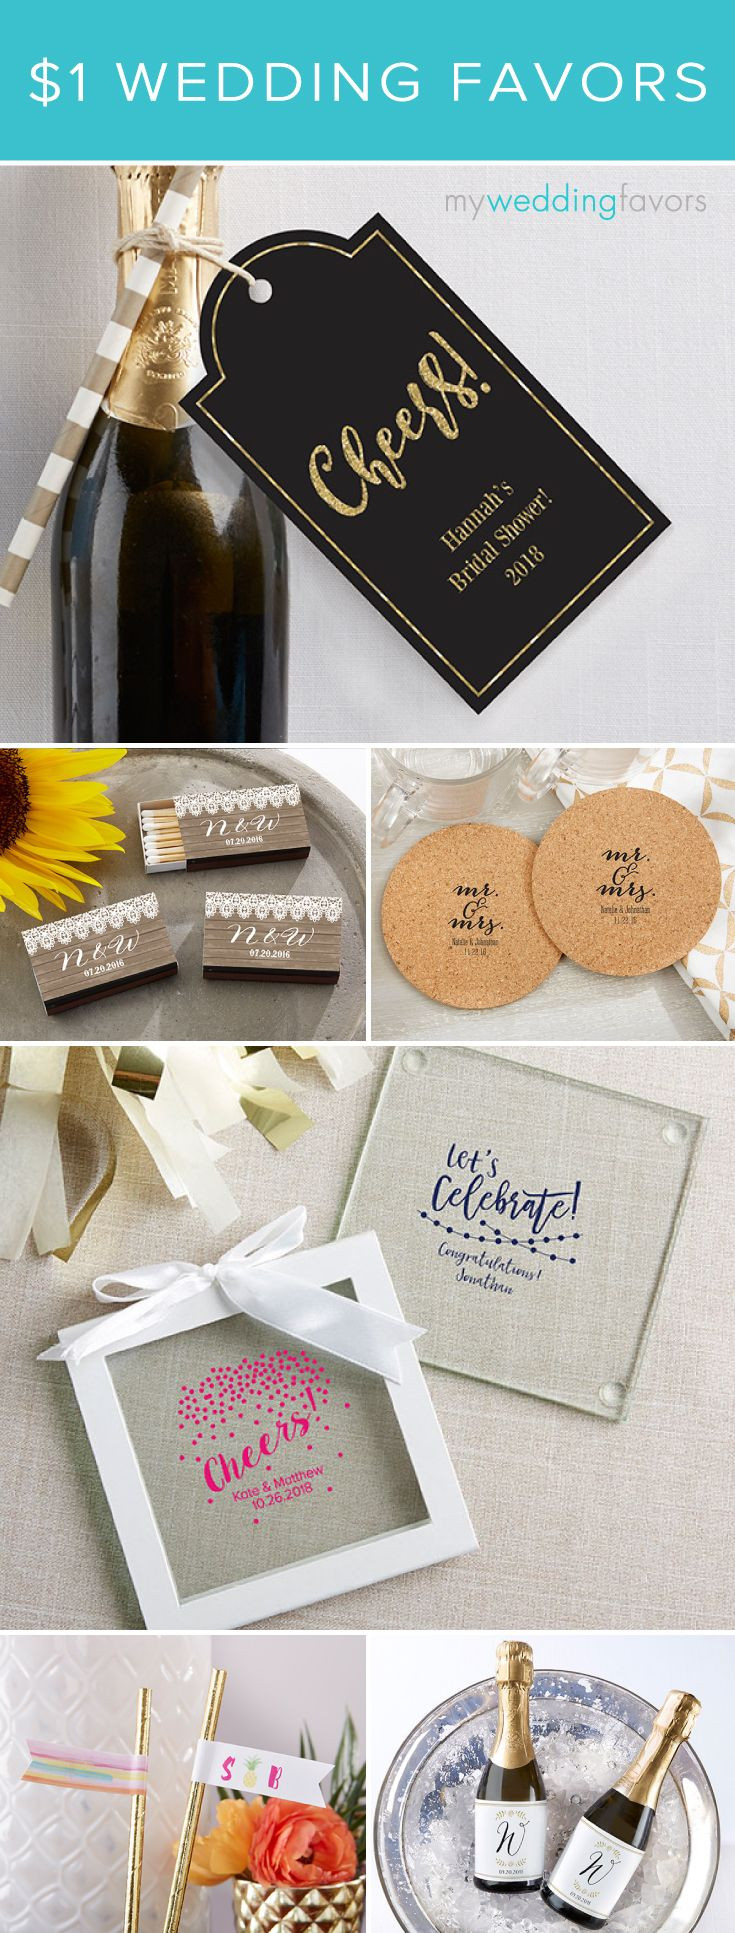 Best ideas about Cheap Wedding Gift Ideas . Save or Pin Best 25 Inexpensive wedding ts ideas on Pinterest Now.